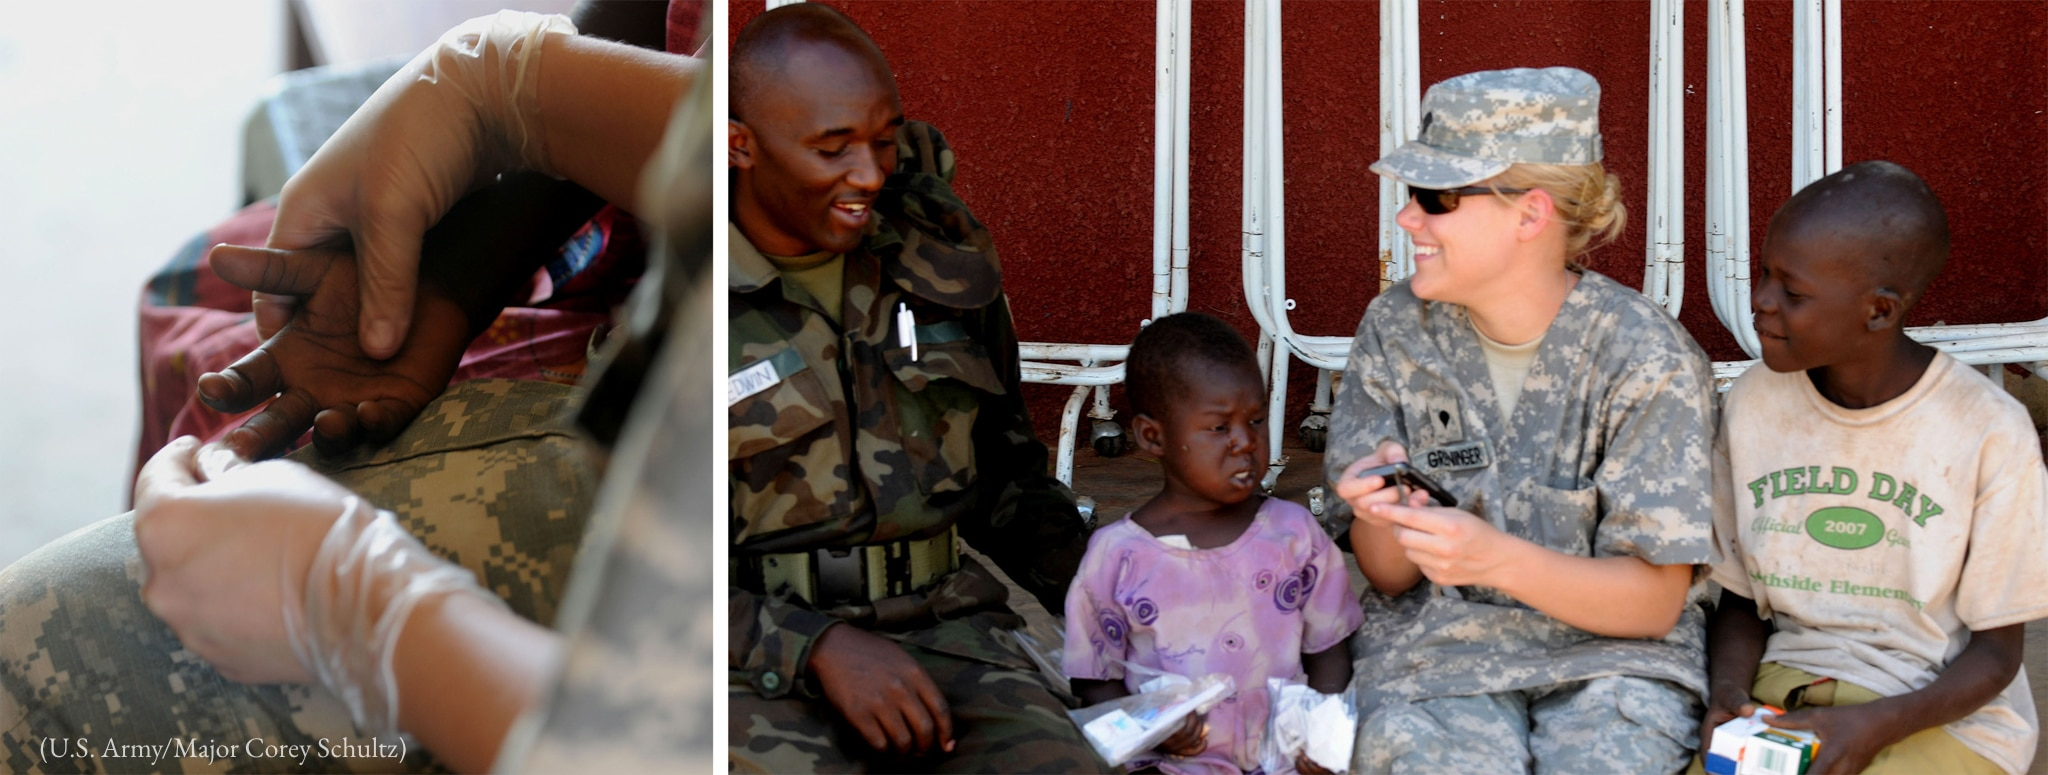 Left photo: Gloved hand of adult holding hand of child. Right photo: African man and American woman in camouflage uniforms seated with girl and boy (U.S. Army/Major Corey Schultz)